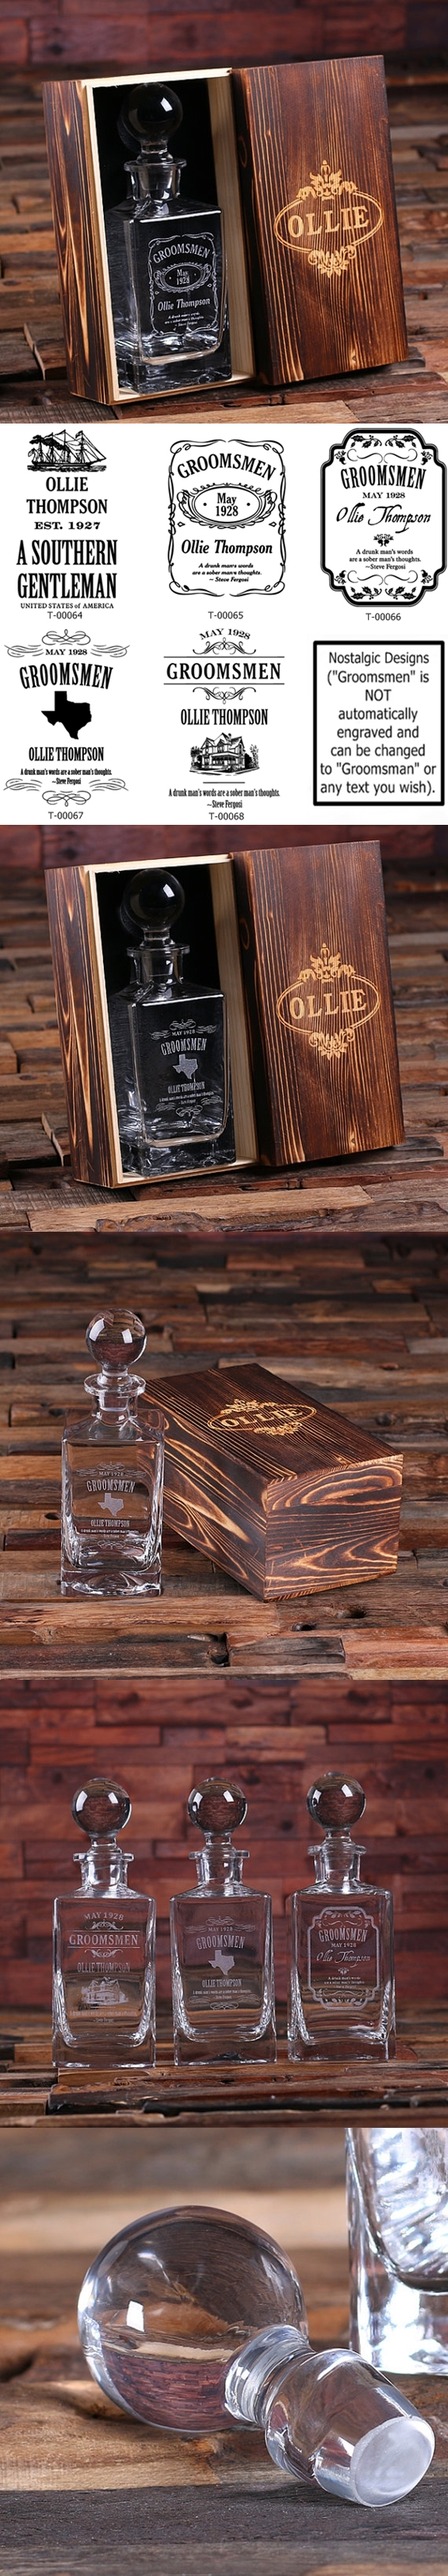 Personalized Decanter with Domed Stopper in Wood Gift-Box (5 Designs)